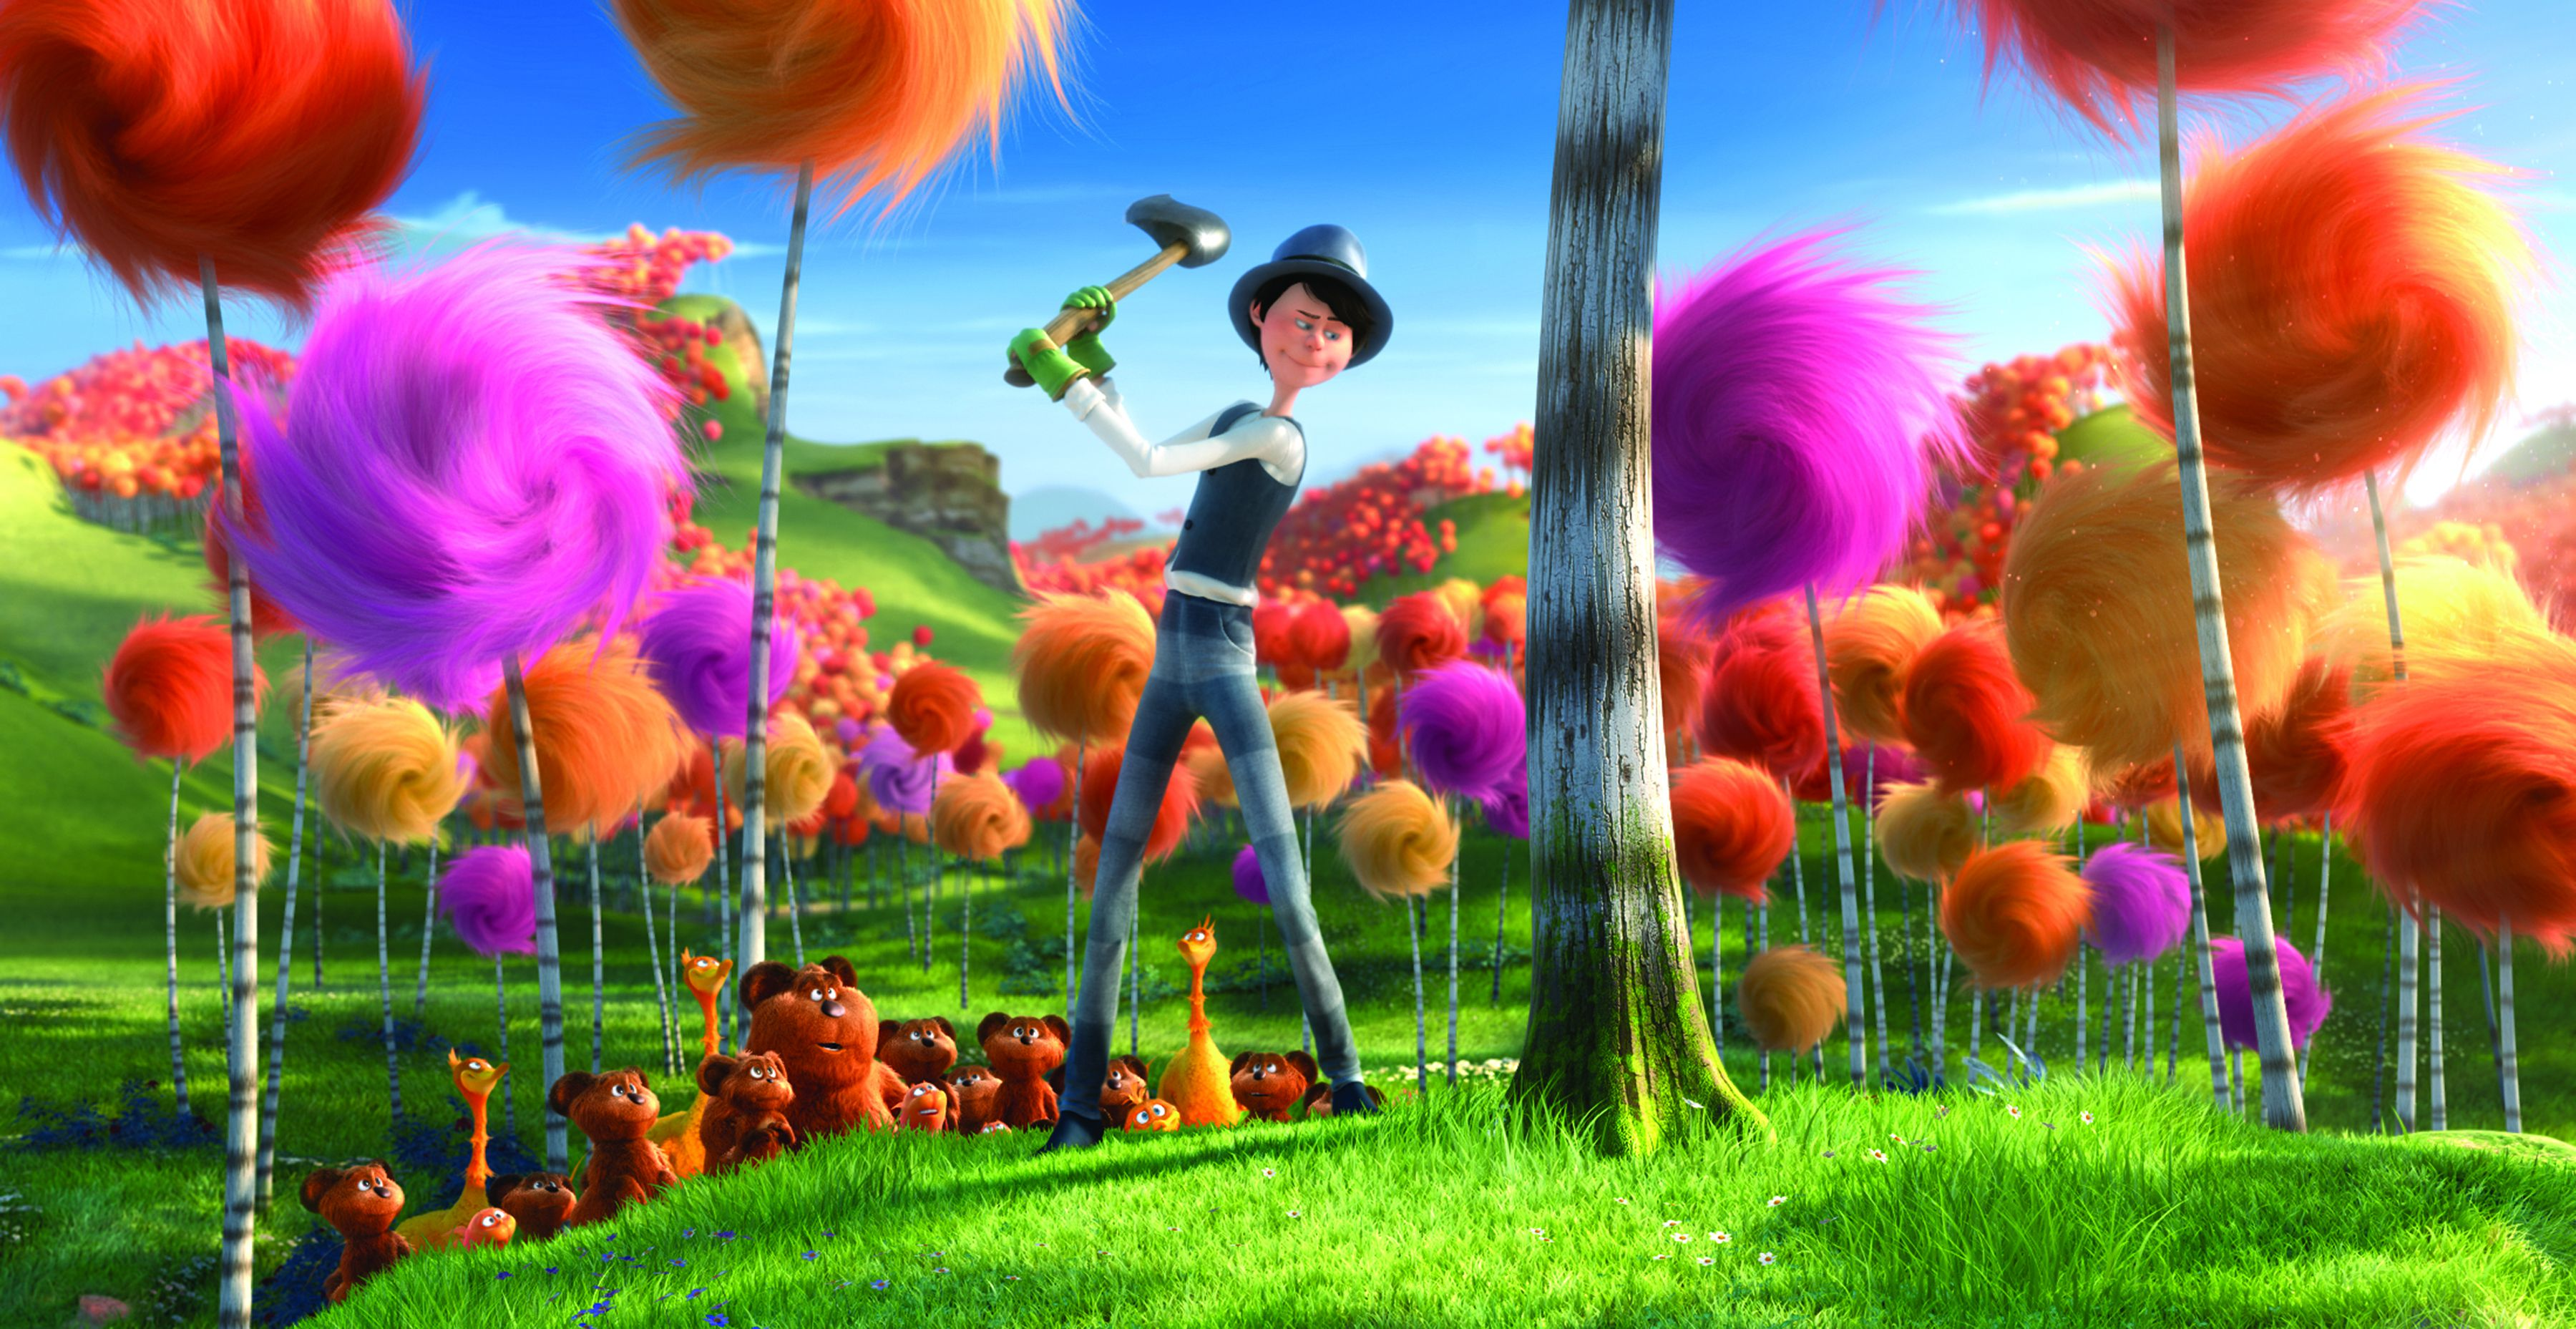 An image from The Lorax